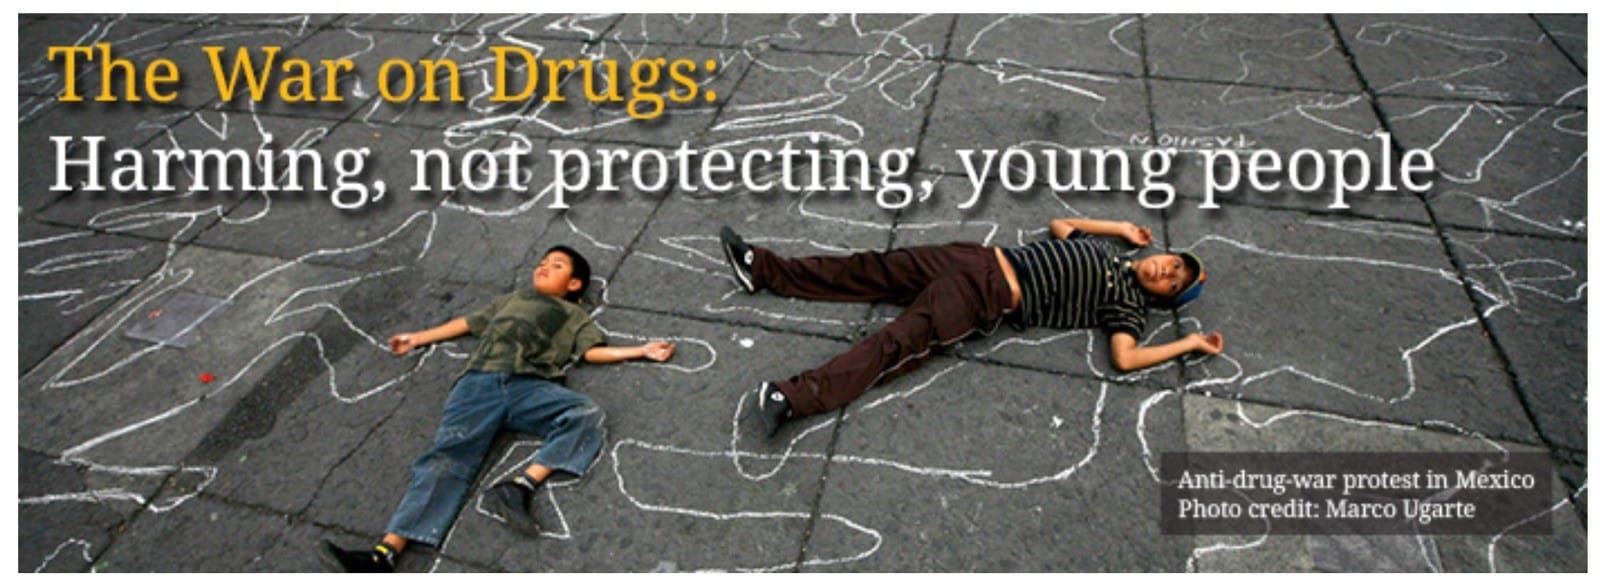 The war on drugs: harming not protecting young people